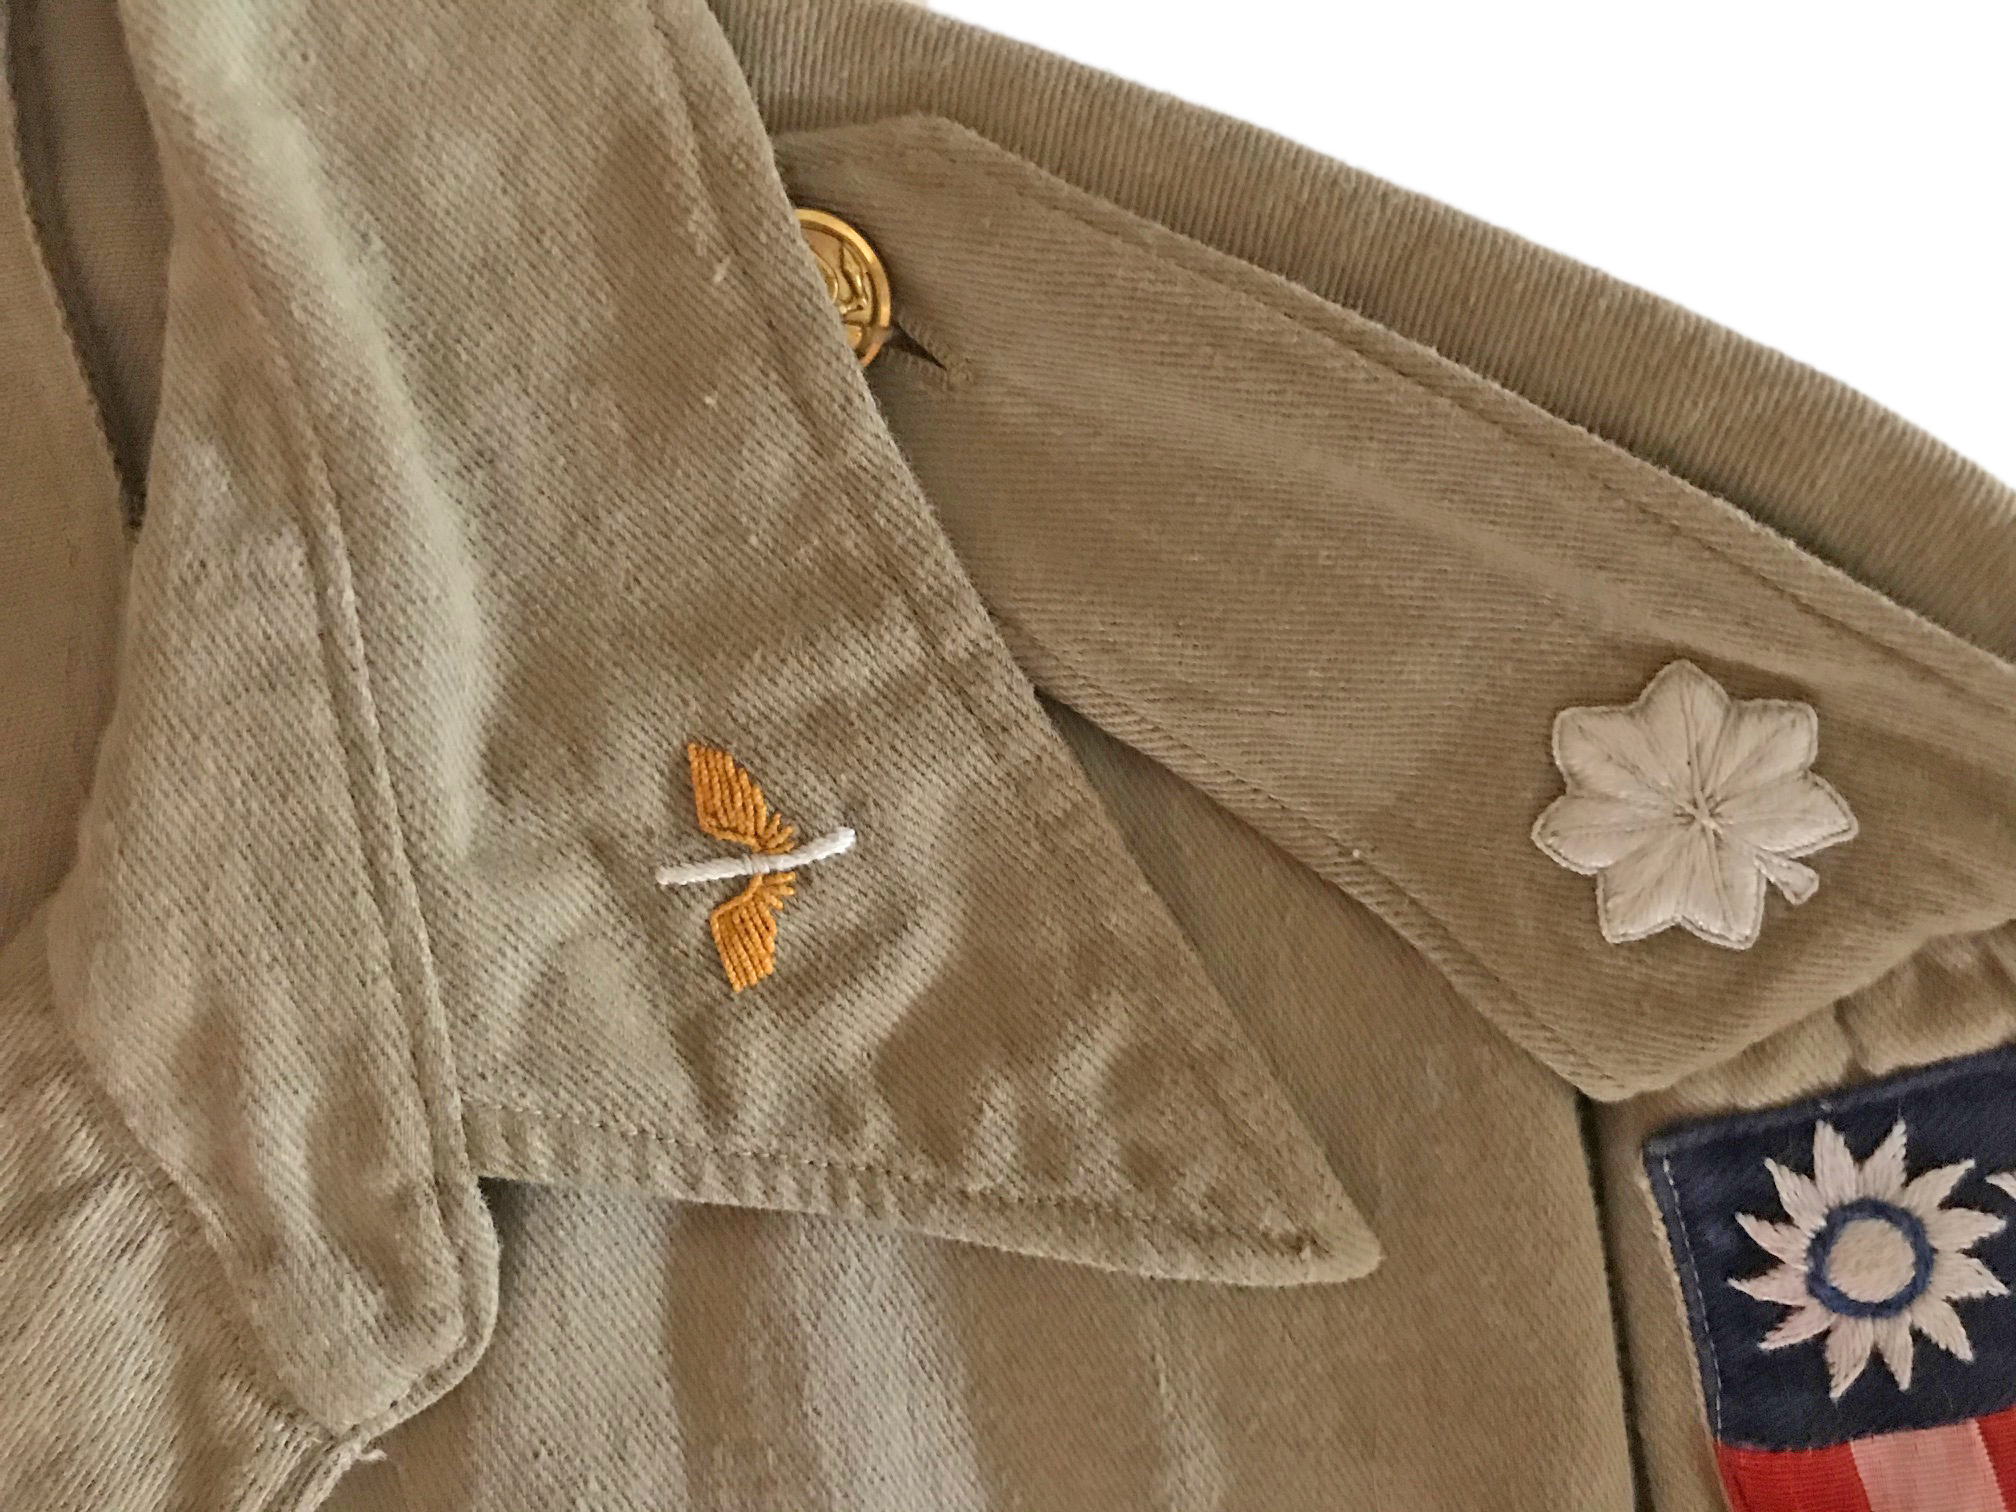 AAF CBI pilot's custom made tan cotton shirt